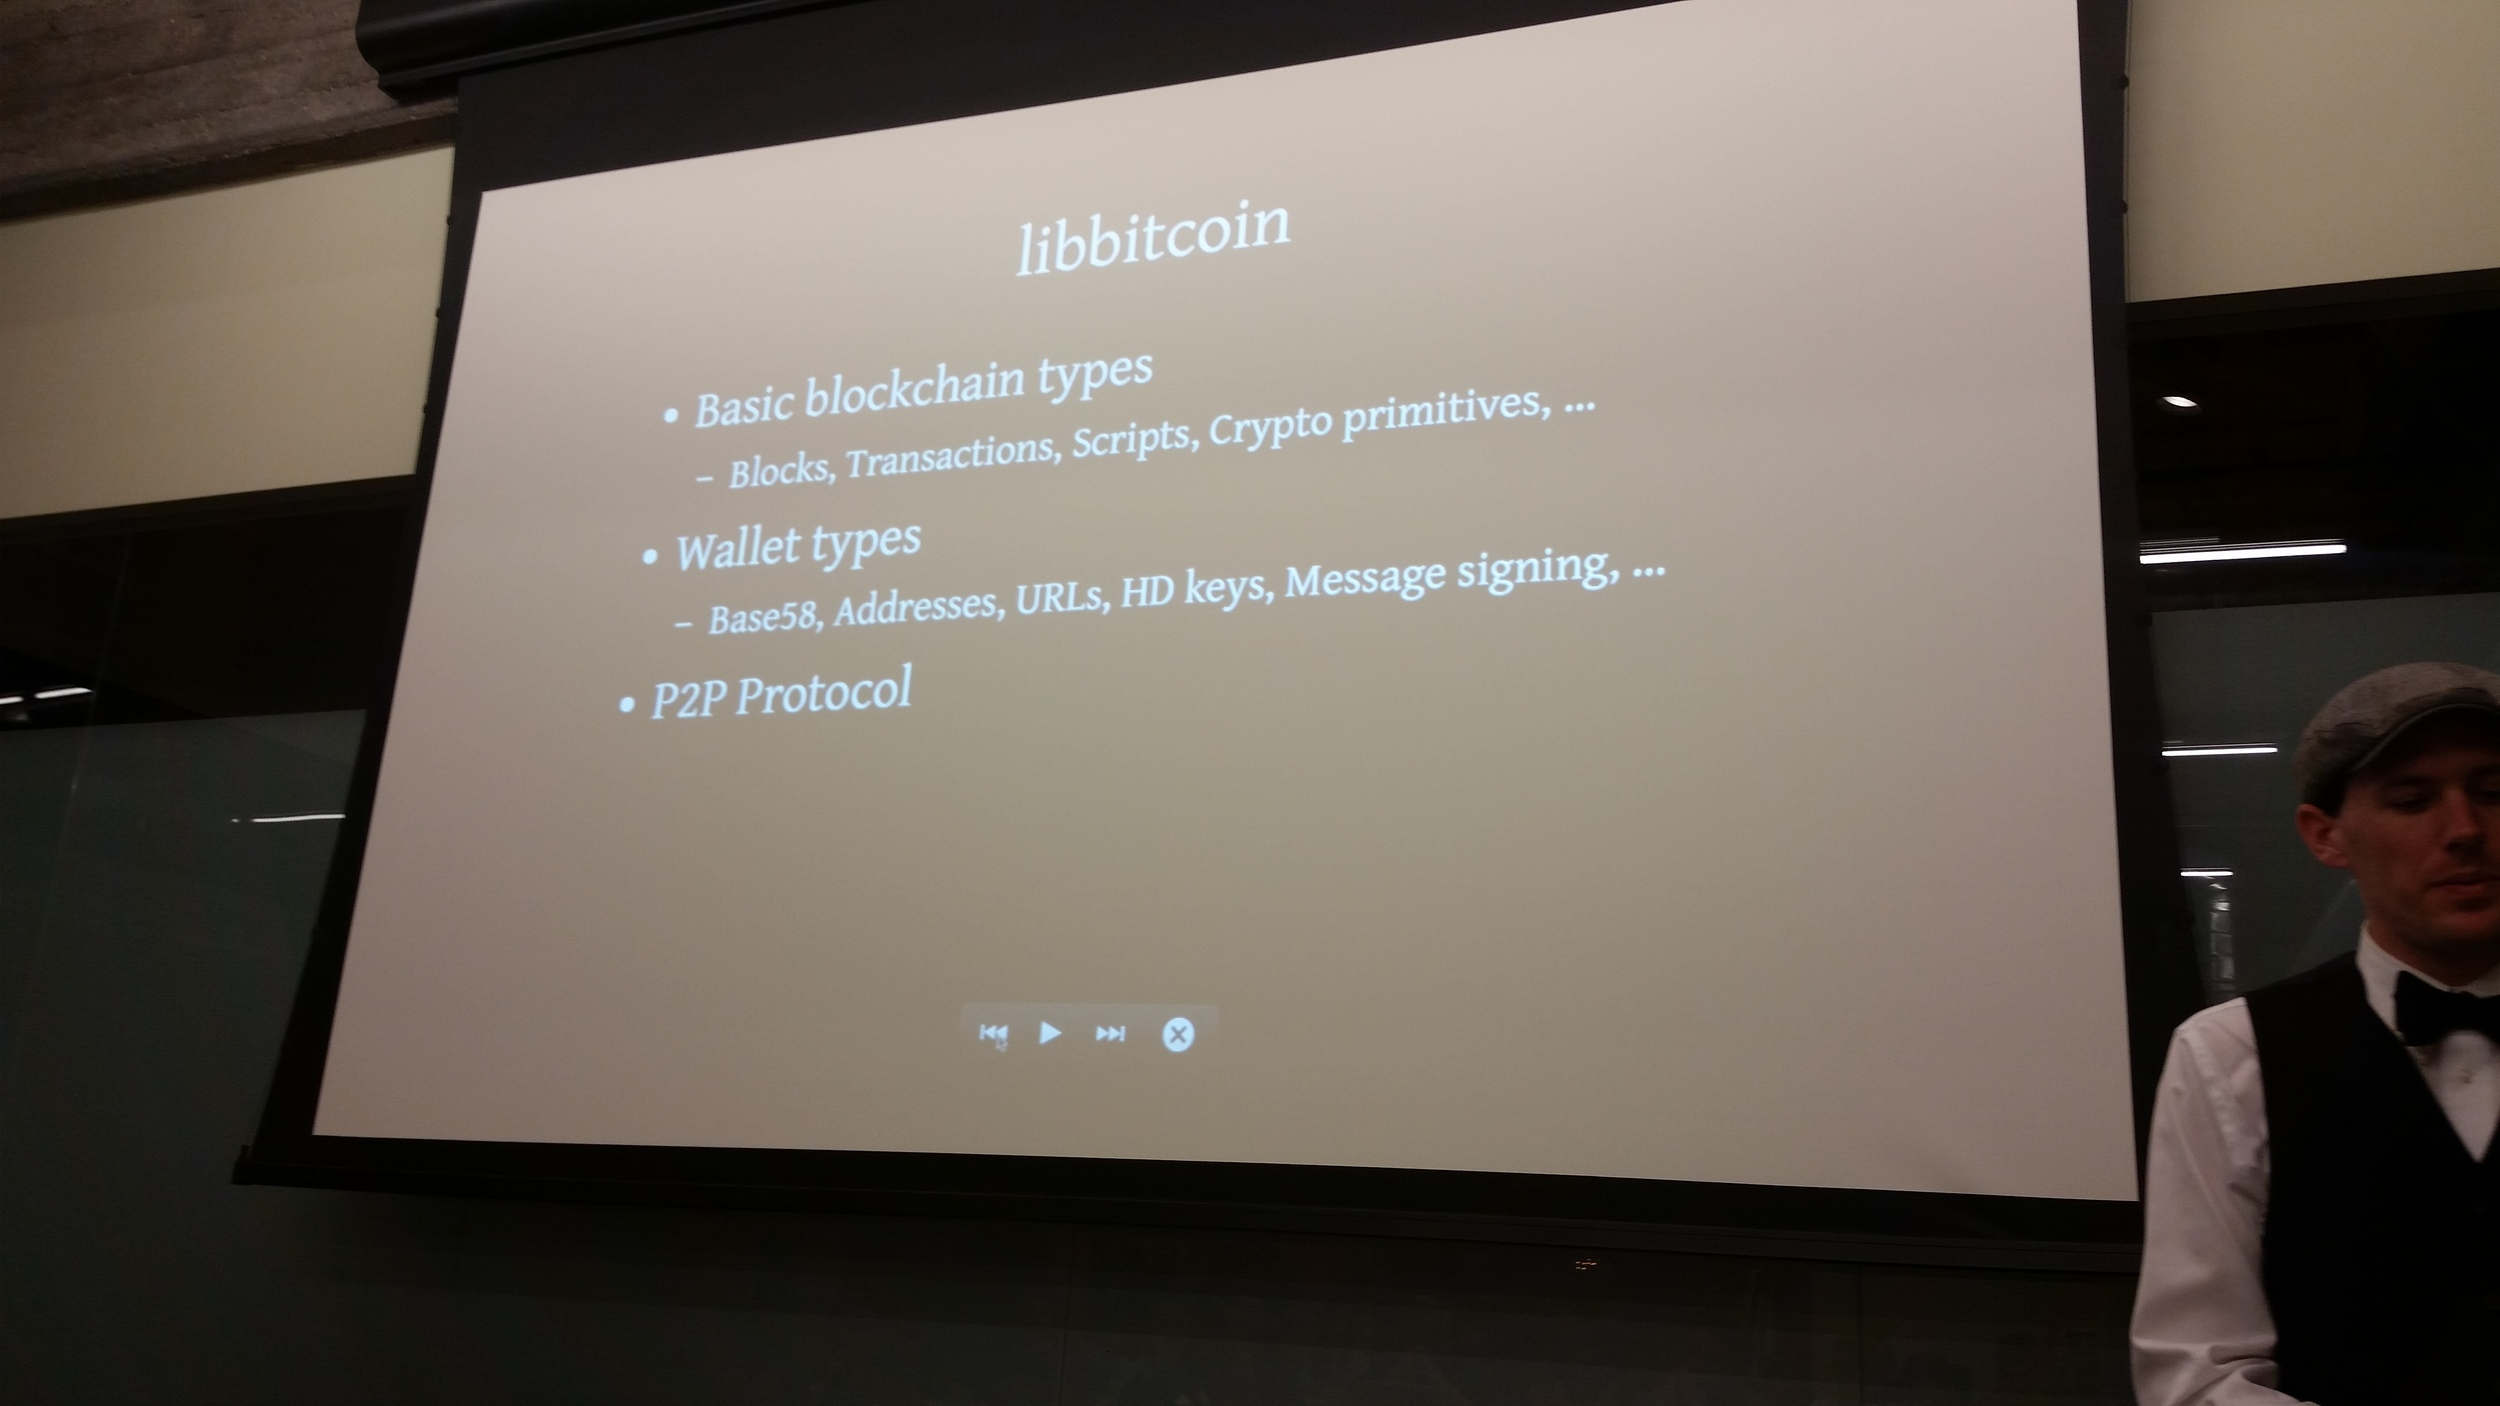 William Swanson, the presenter for Libbitcoin. Amazingly intelligent and super approachable.